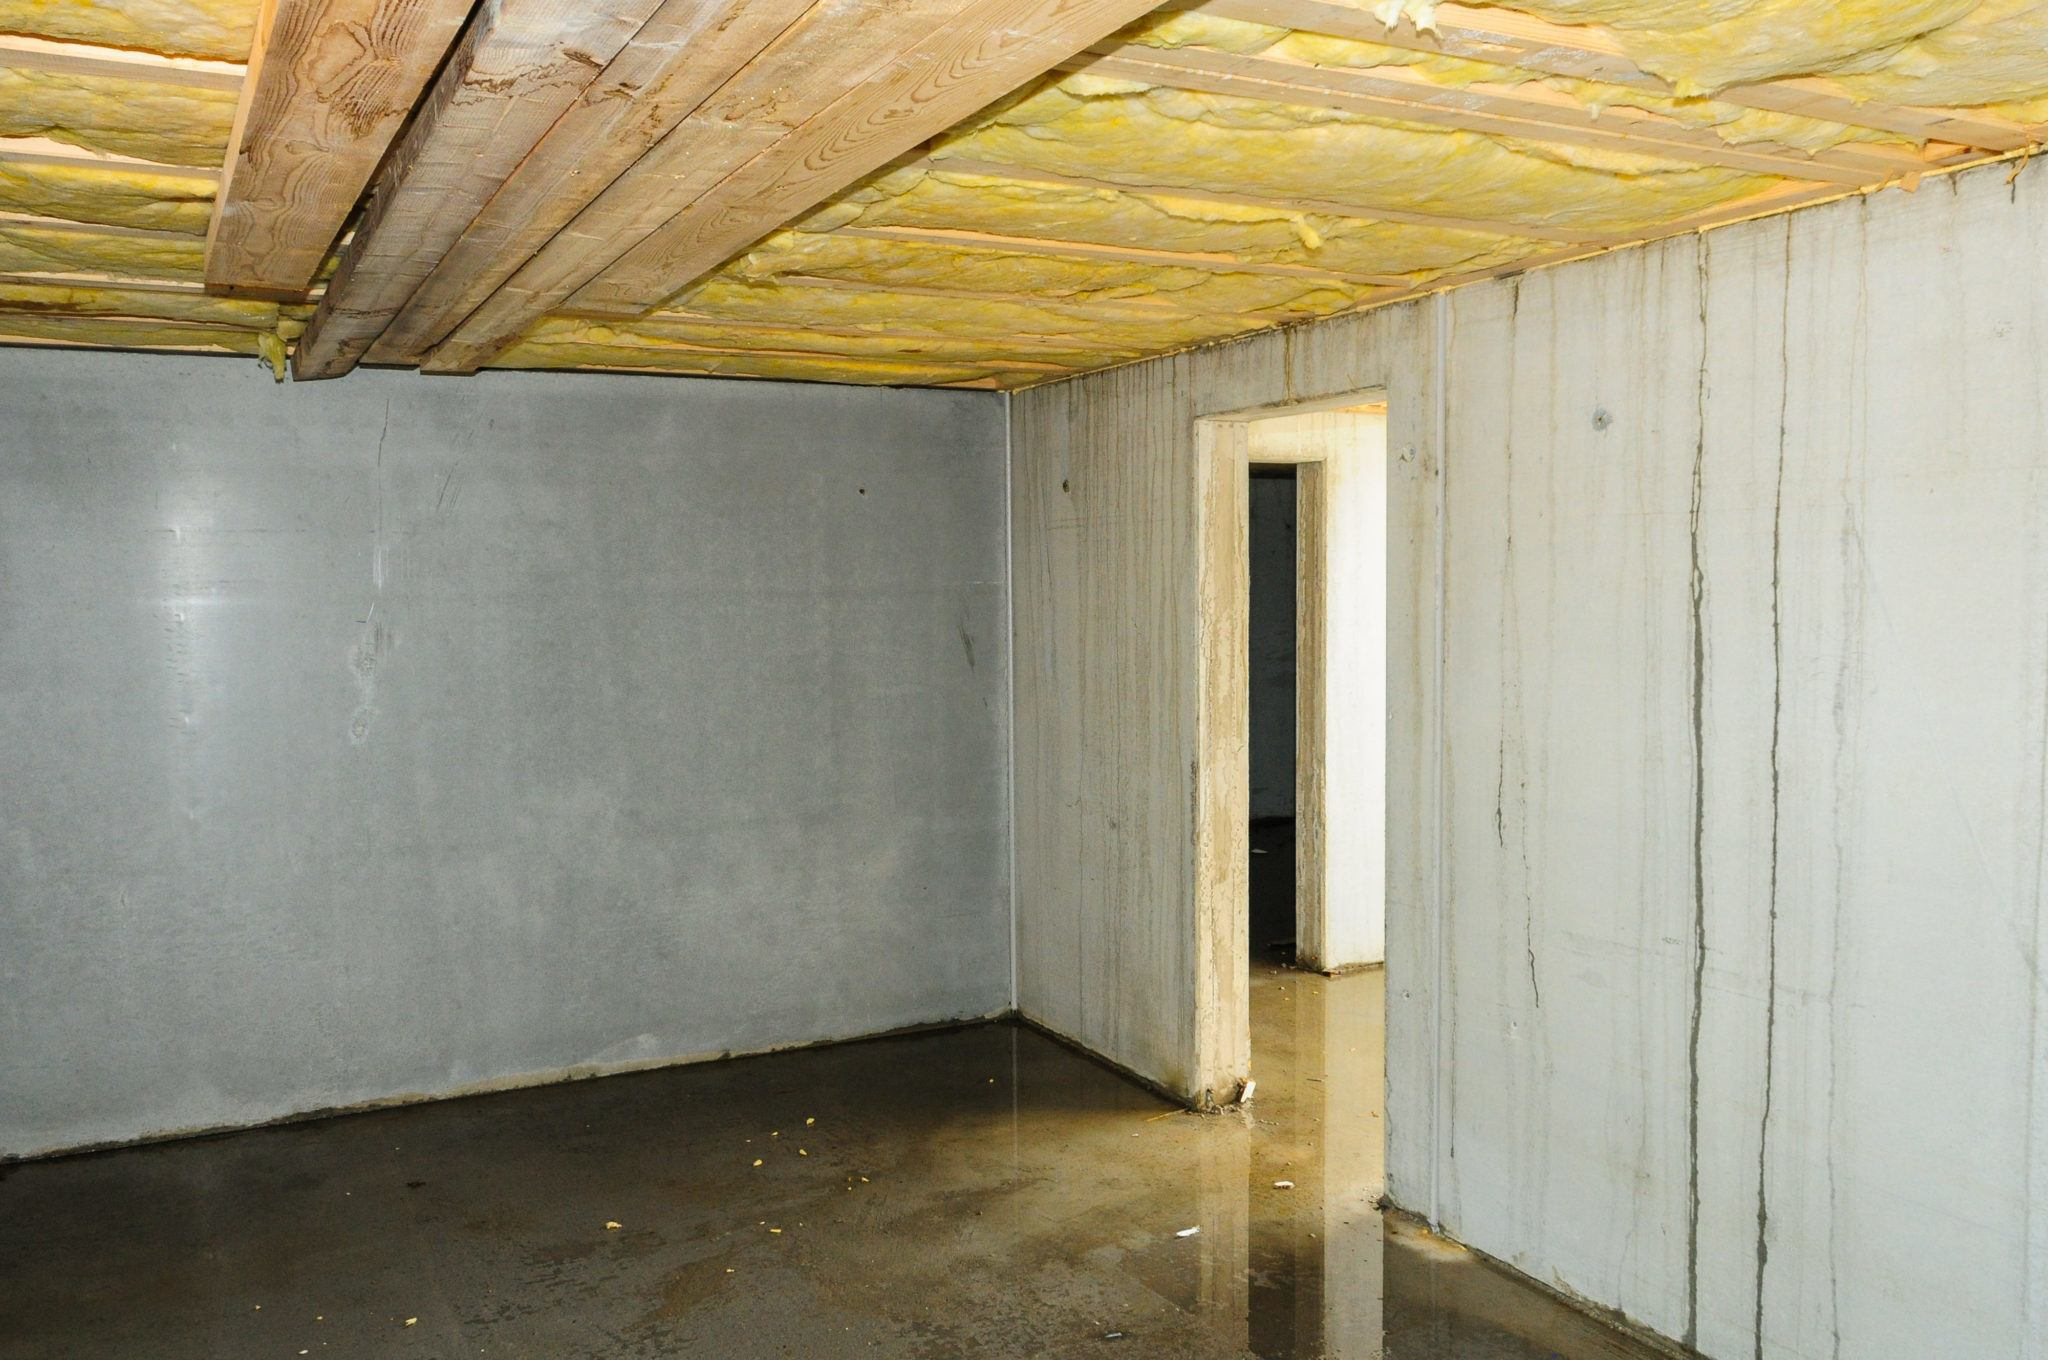 Reasons To Use The Water Sealant Paint For Basement Basement with a wet floor